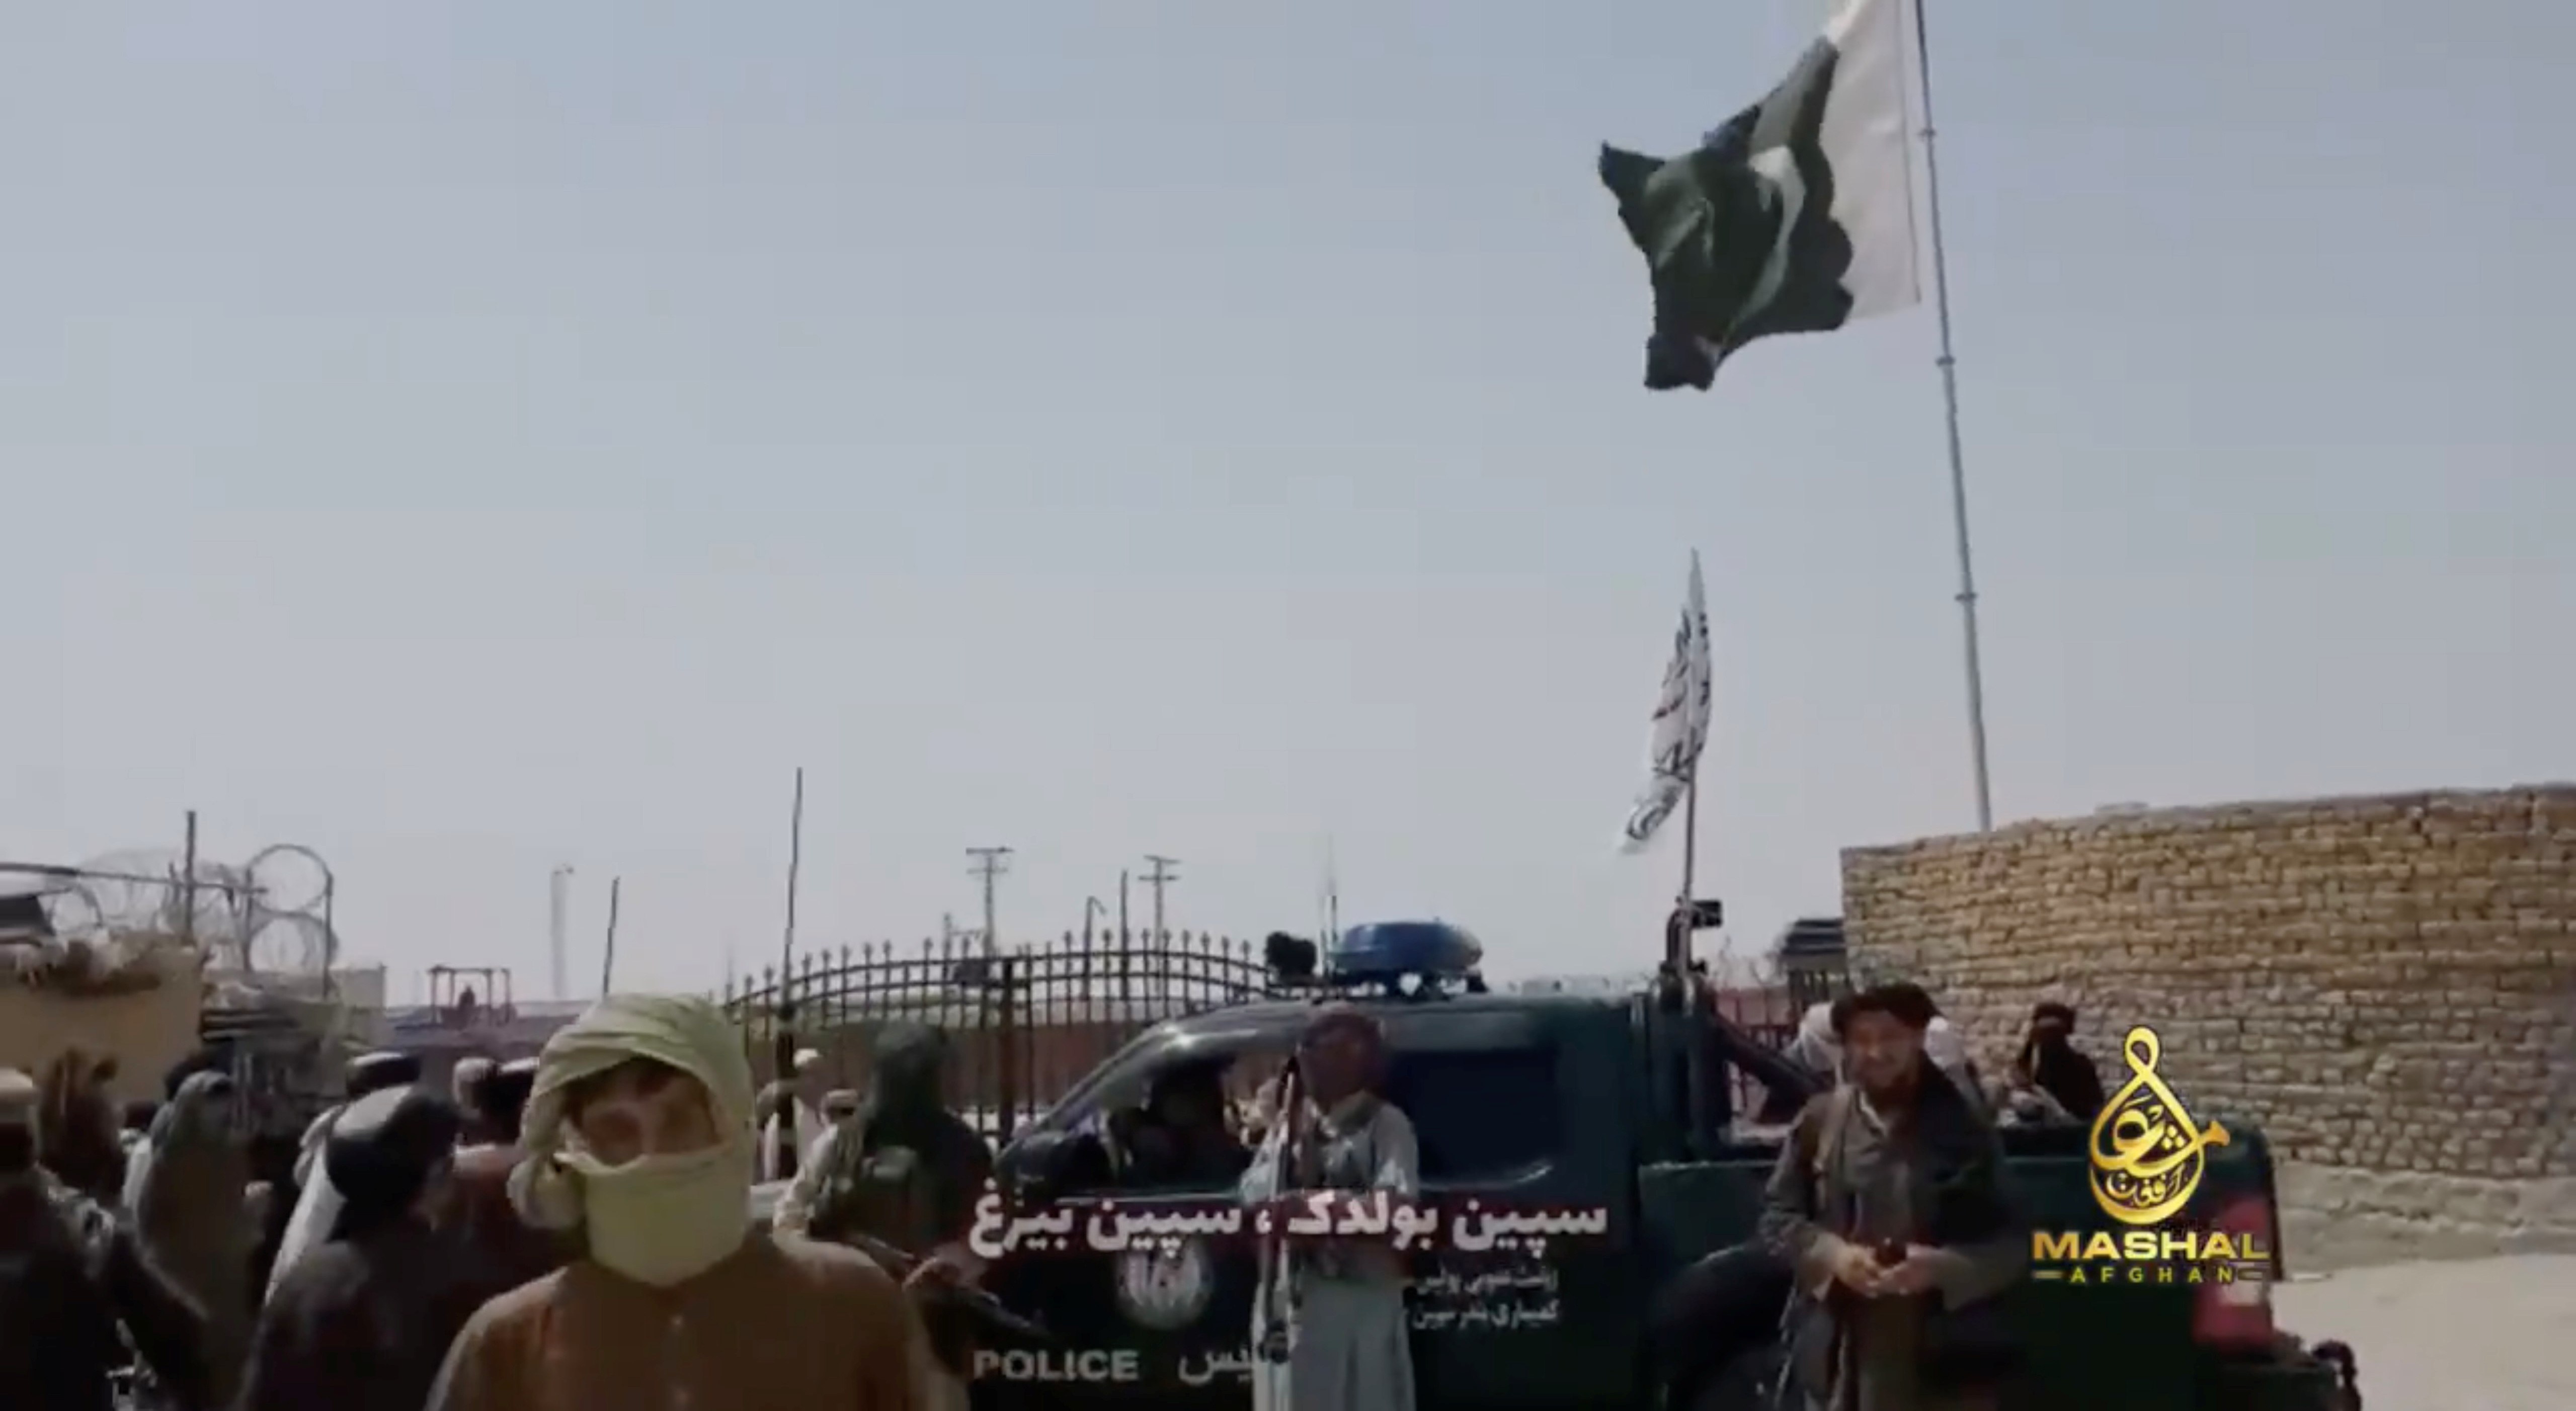 People stand in front of a vehicle as an Islamic Emirate of Afghanistan and a Pakistan's flag flutter in front of the friendship gate of Afghanistan and Pakistan at the Wesh-Chaman border crossing, Spin Boldak, Afghanistan July 14, 2021, in this screen grab obtained from a video. TALIBAN HANDOUT via REUTERS THIS IMAGE HAS BEEN SUPPLIED BY A THIRD PARTY.